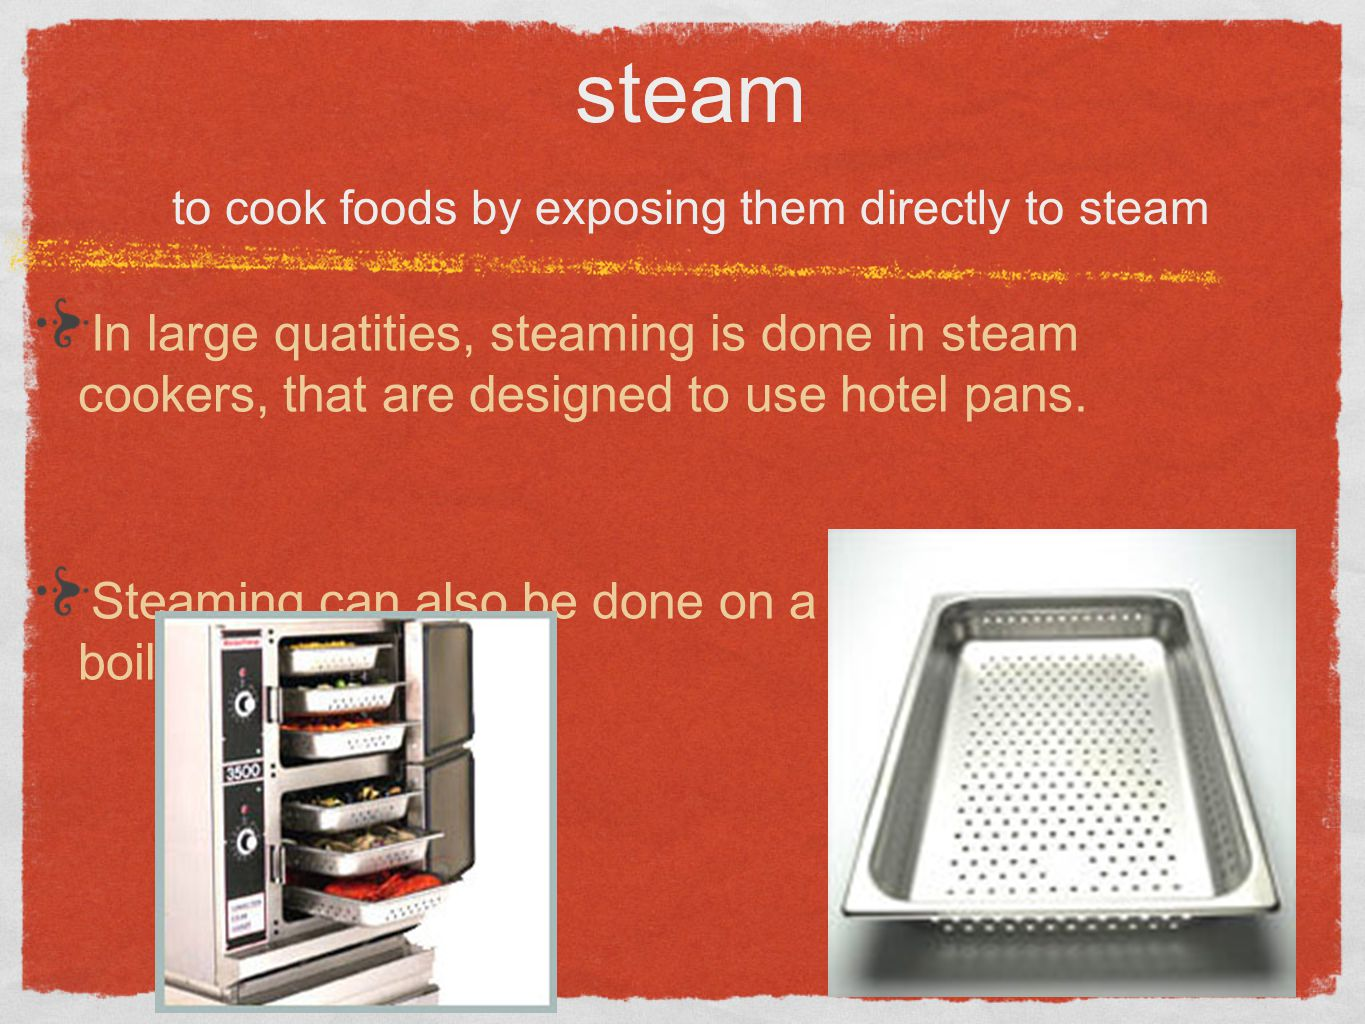 In large quatities, steaming is done in steam cookers, that are designed to use hotel pans. Steaming can also be done on a rack above boiling water. s